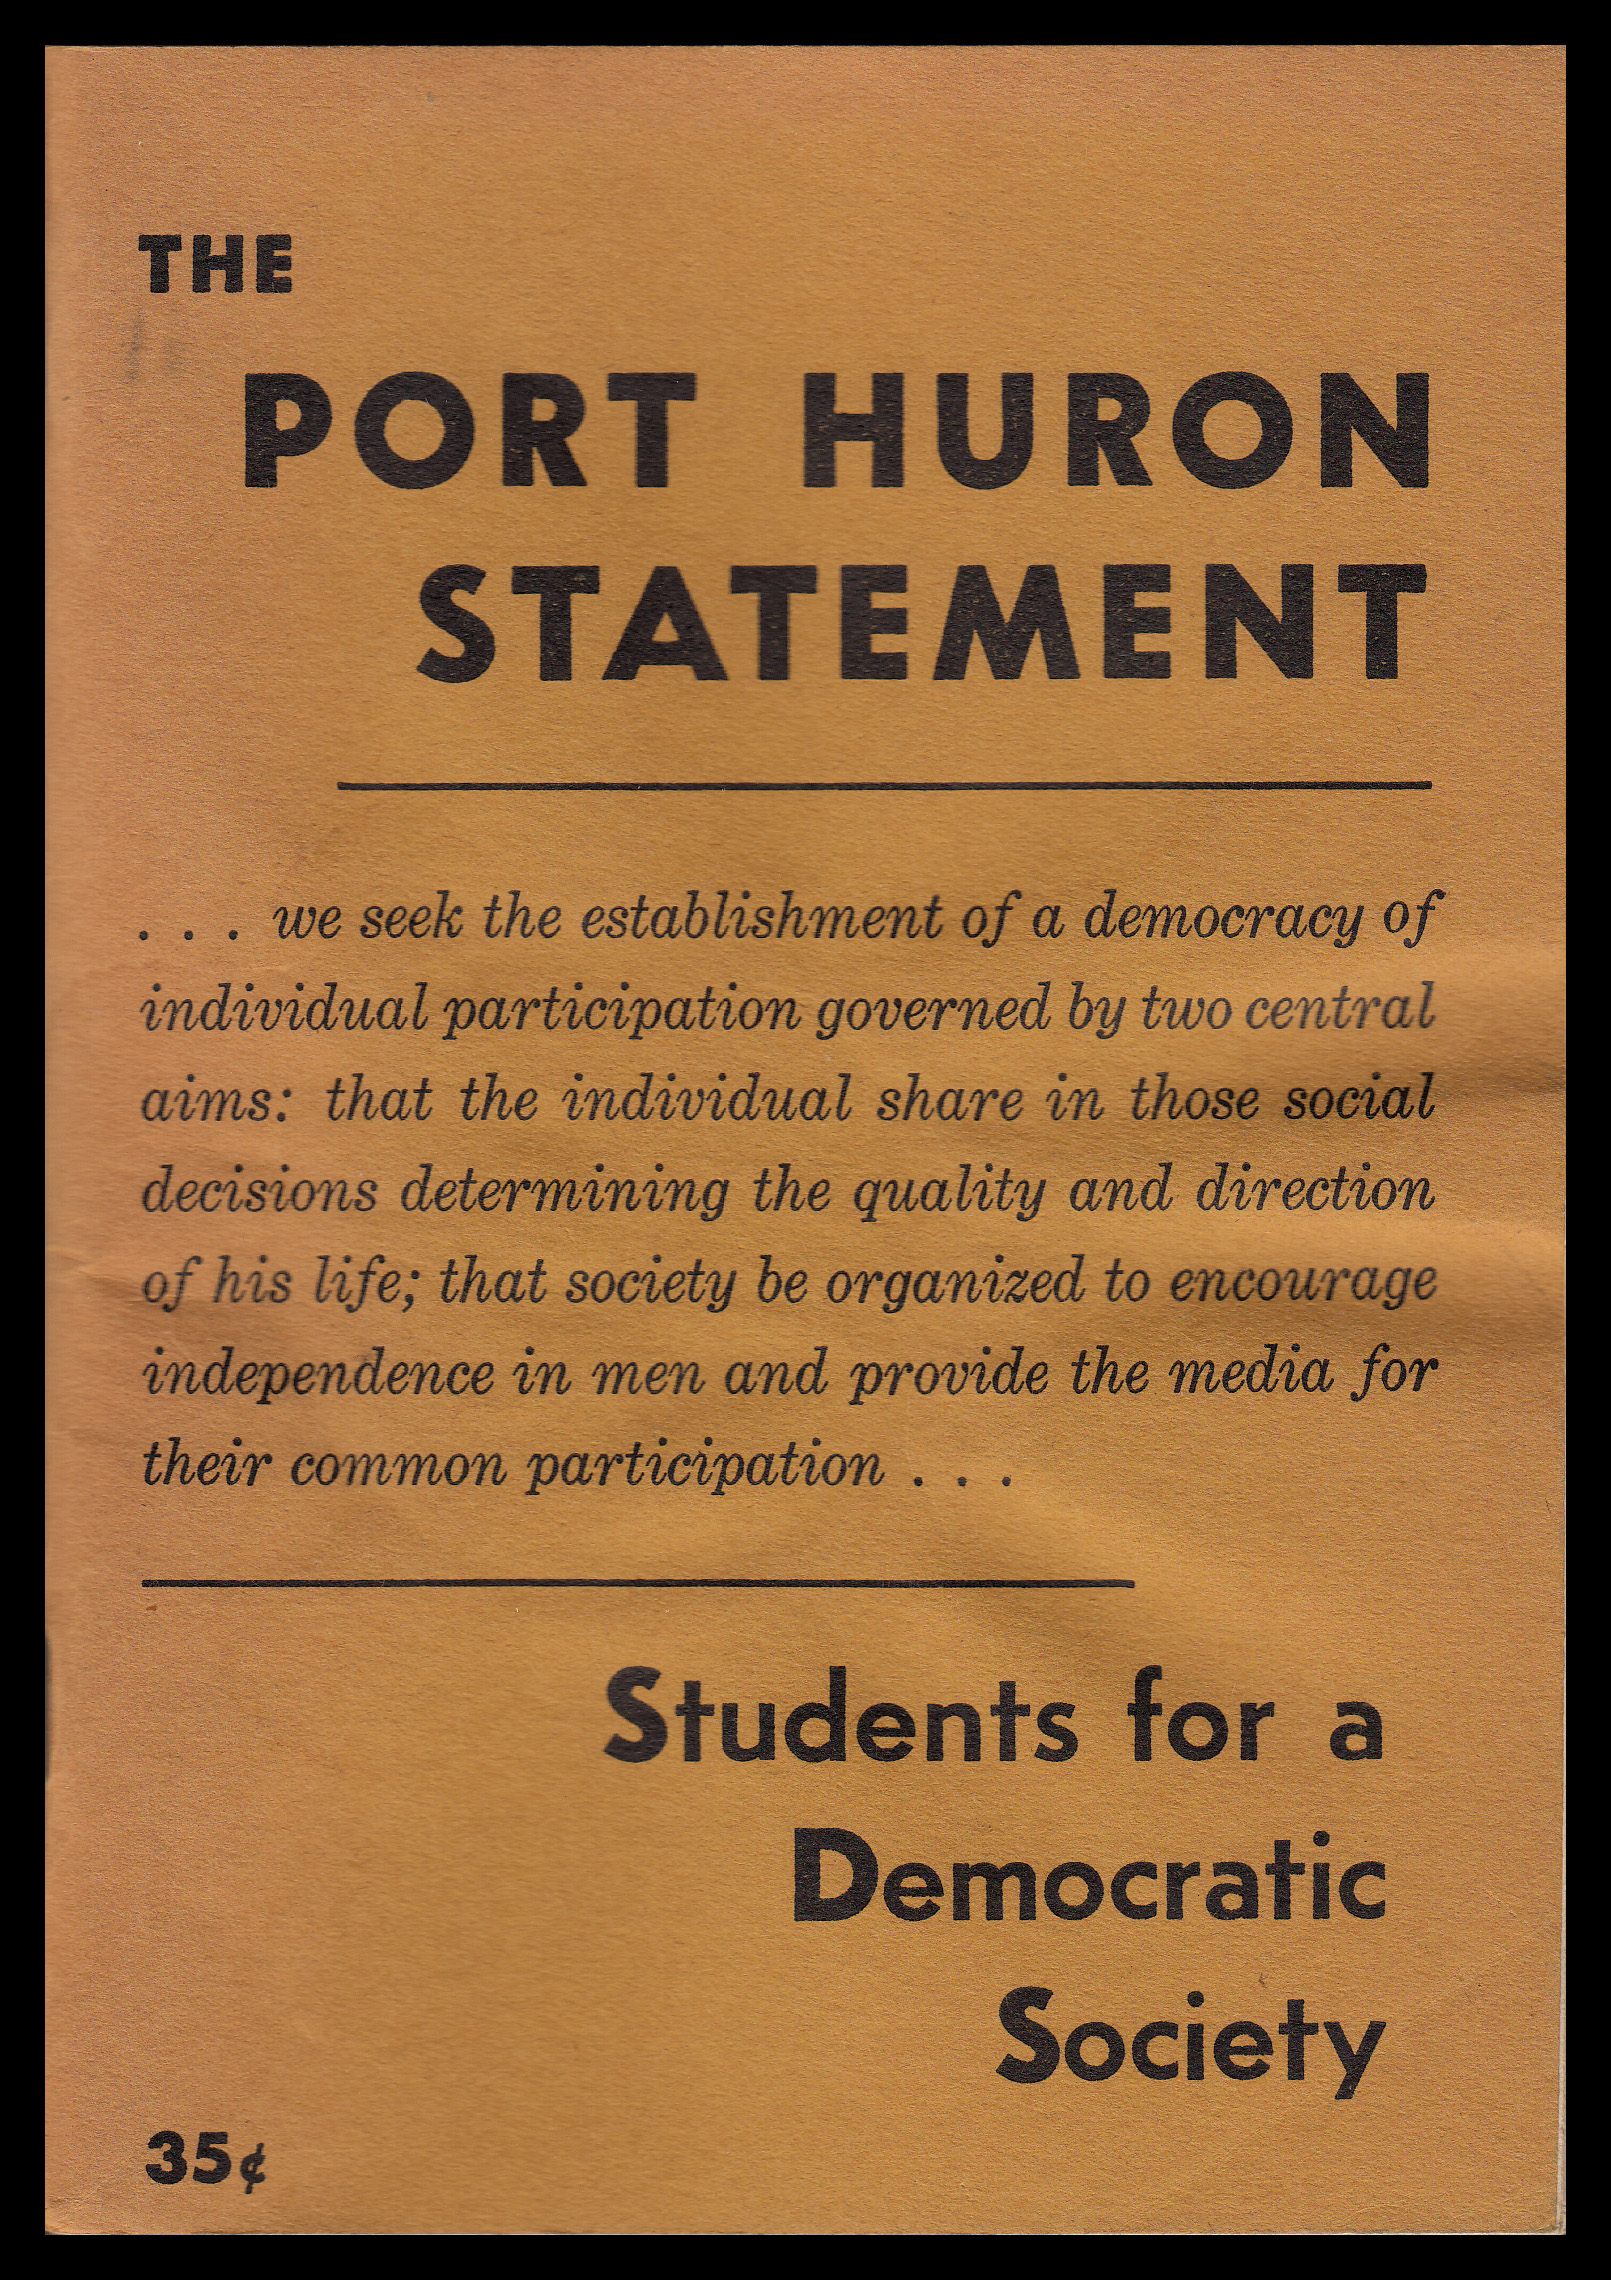 A photograph of the Port Huron Statement by the Students for a Democratic Society